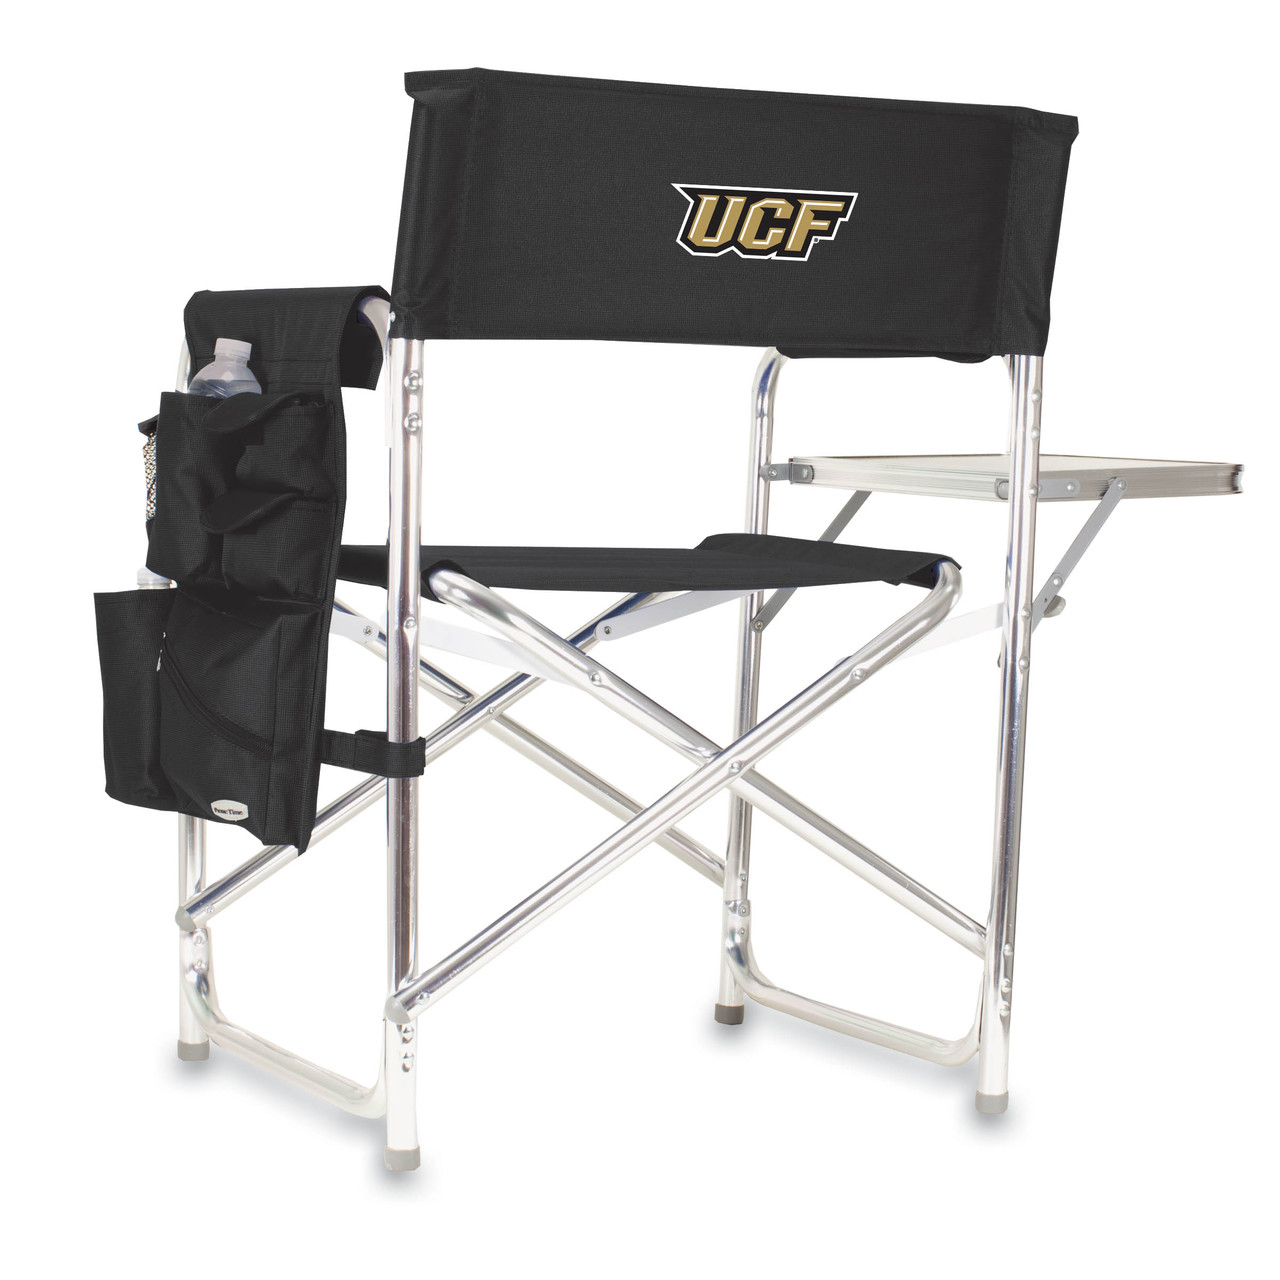 Sports Chair - University of Central Florida